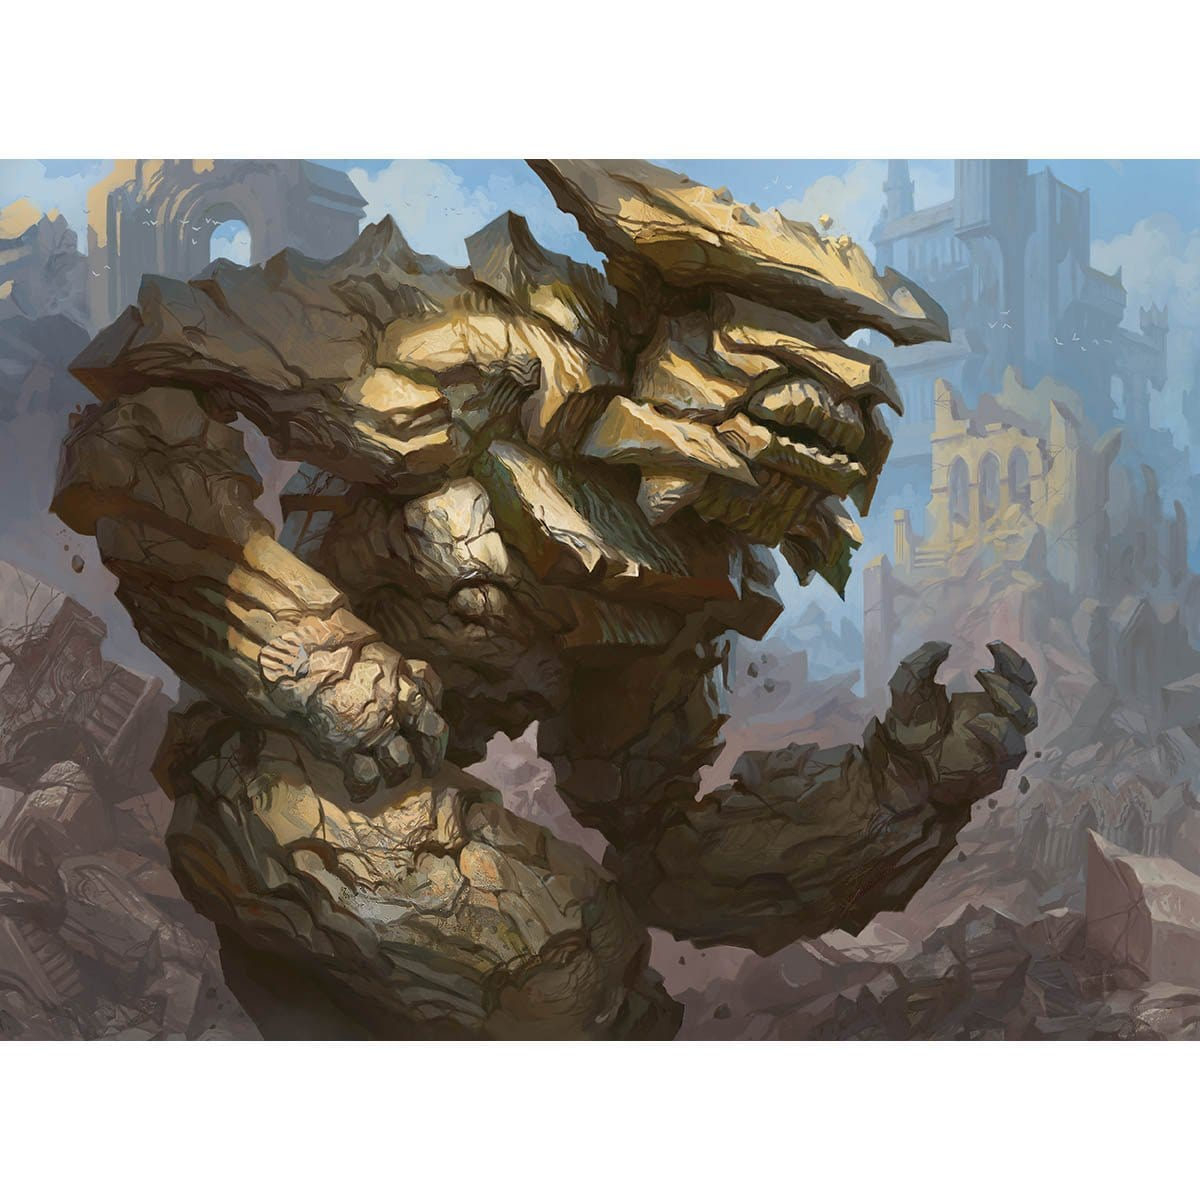 Rumbling Ruin Print - Print - Original Magic Art - Accessories for Magic the Gathering and other card games